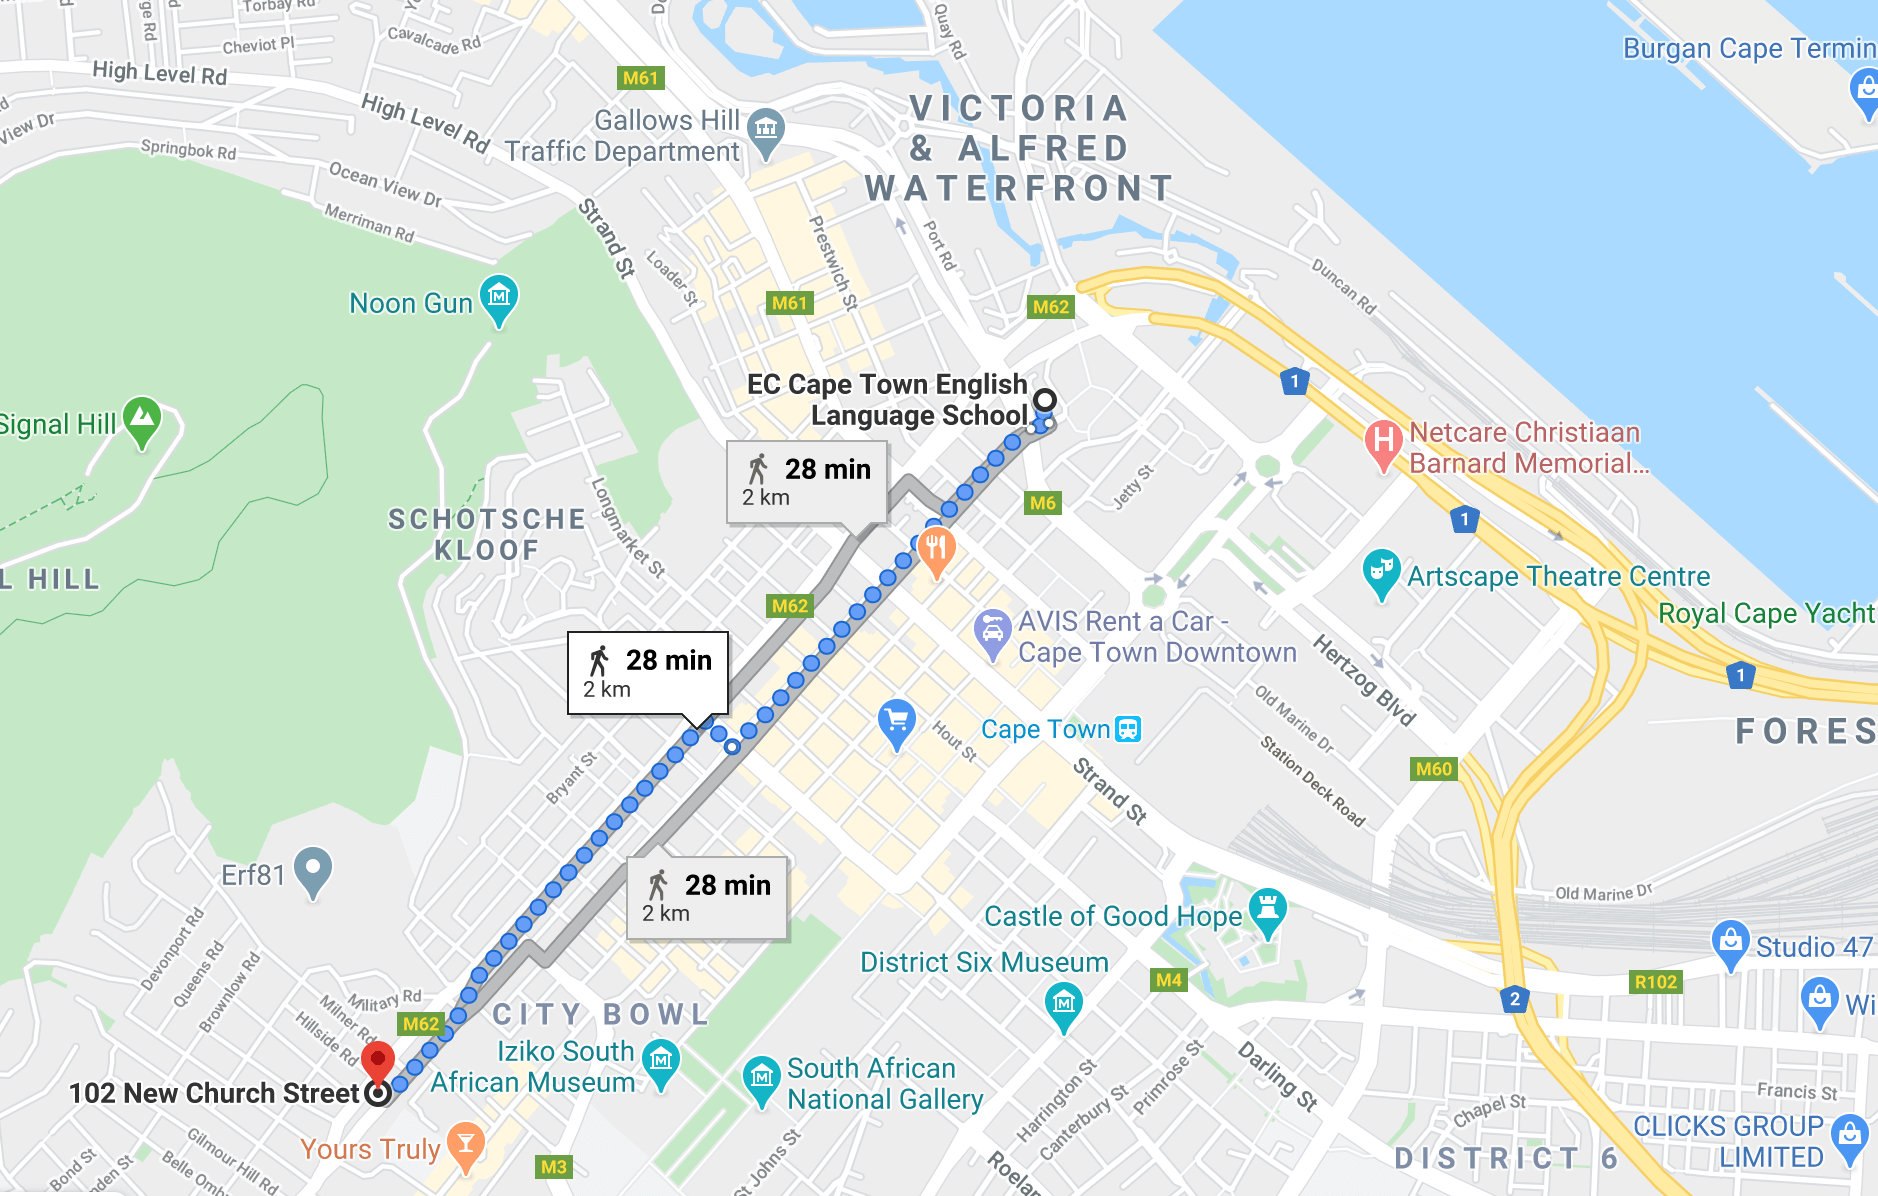 church residence map distance ec school cape town